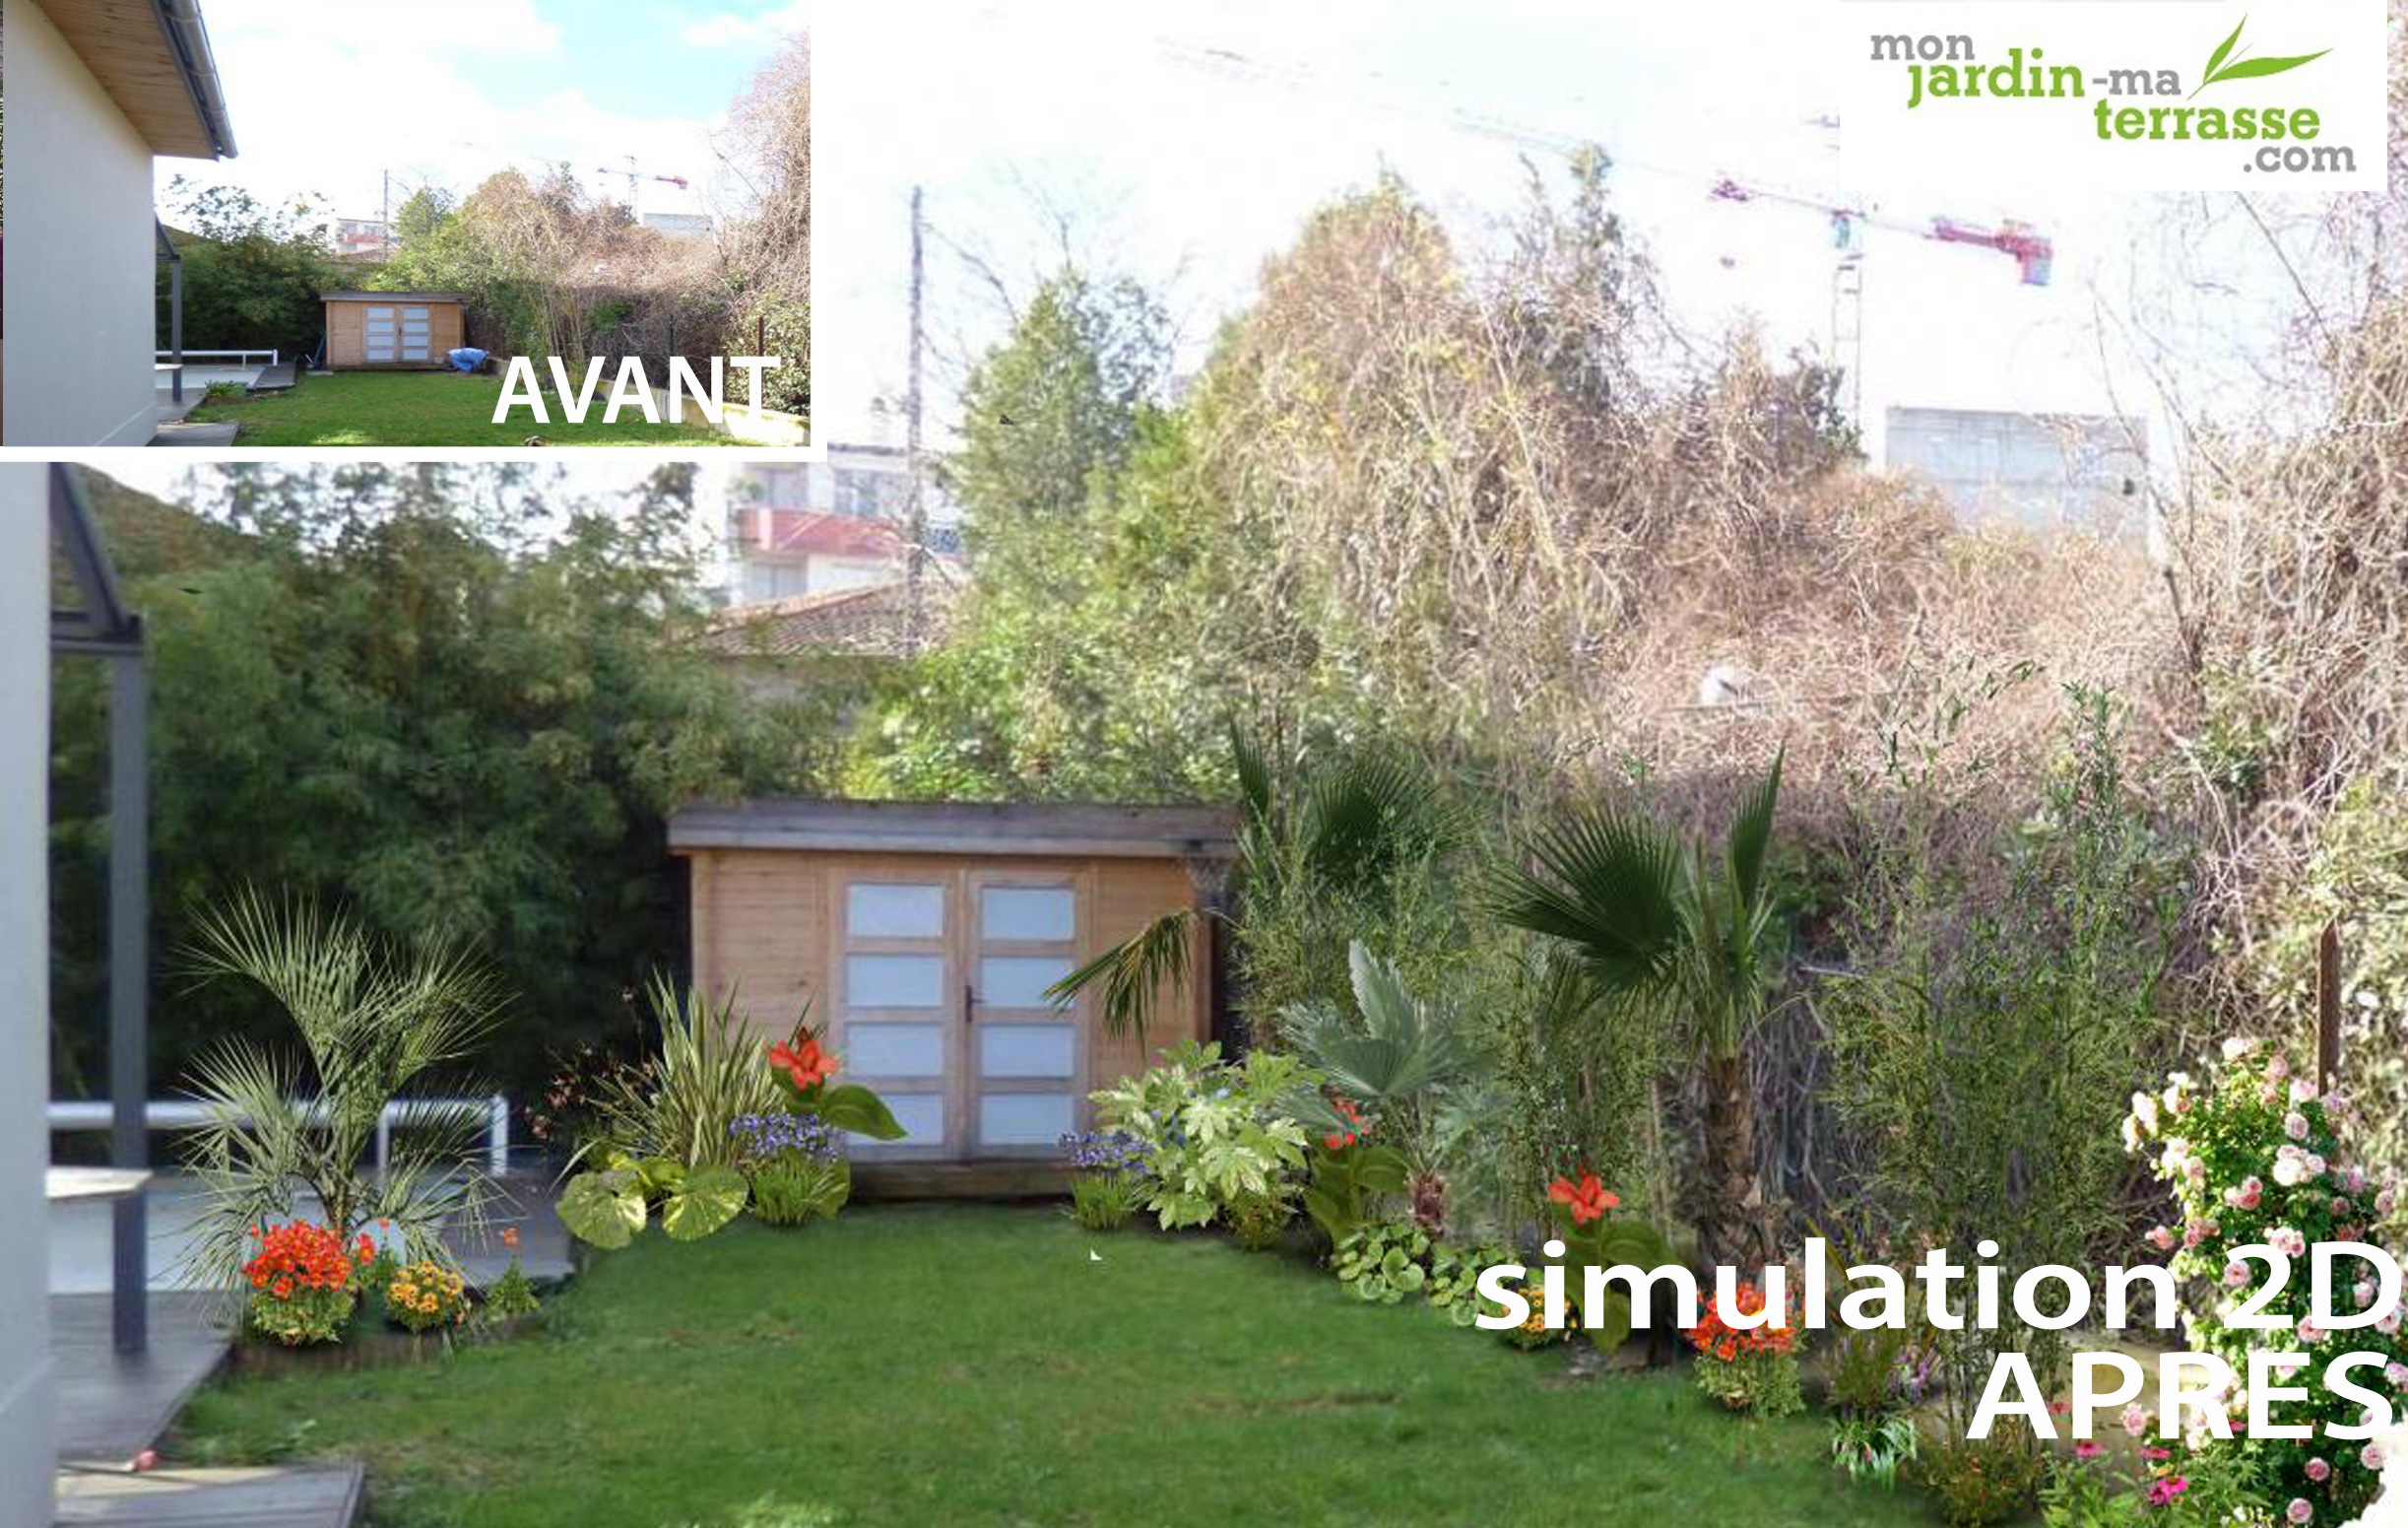 Cr ation d un jardin exotique monjardin for Jardin creation